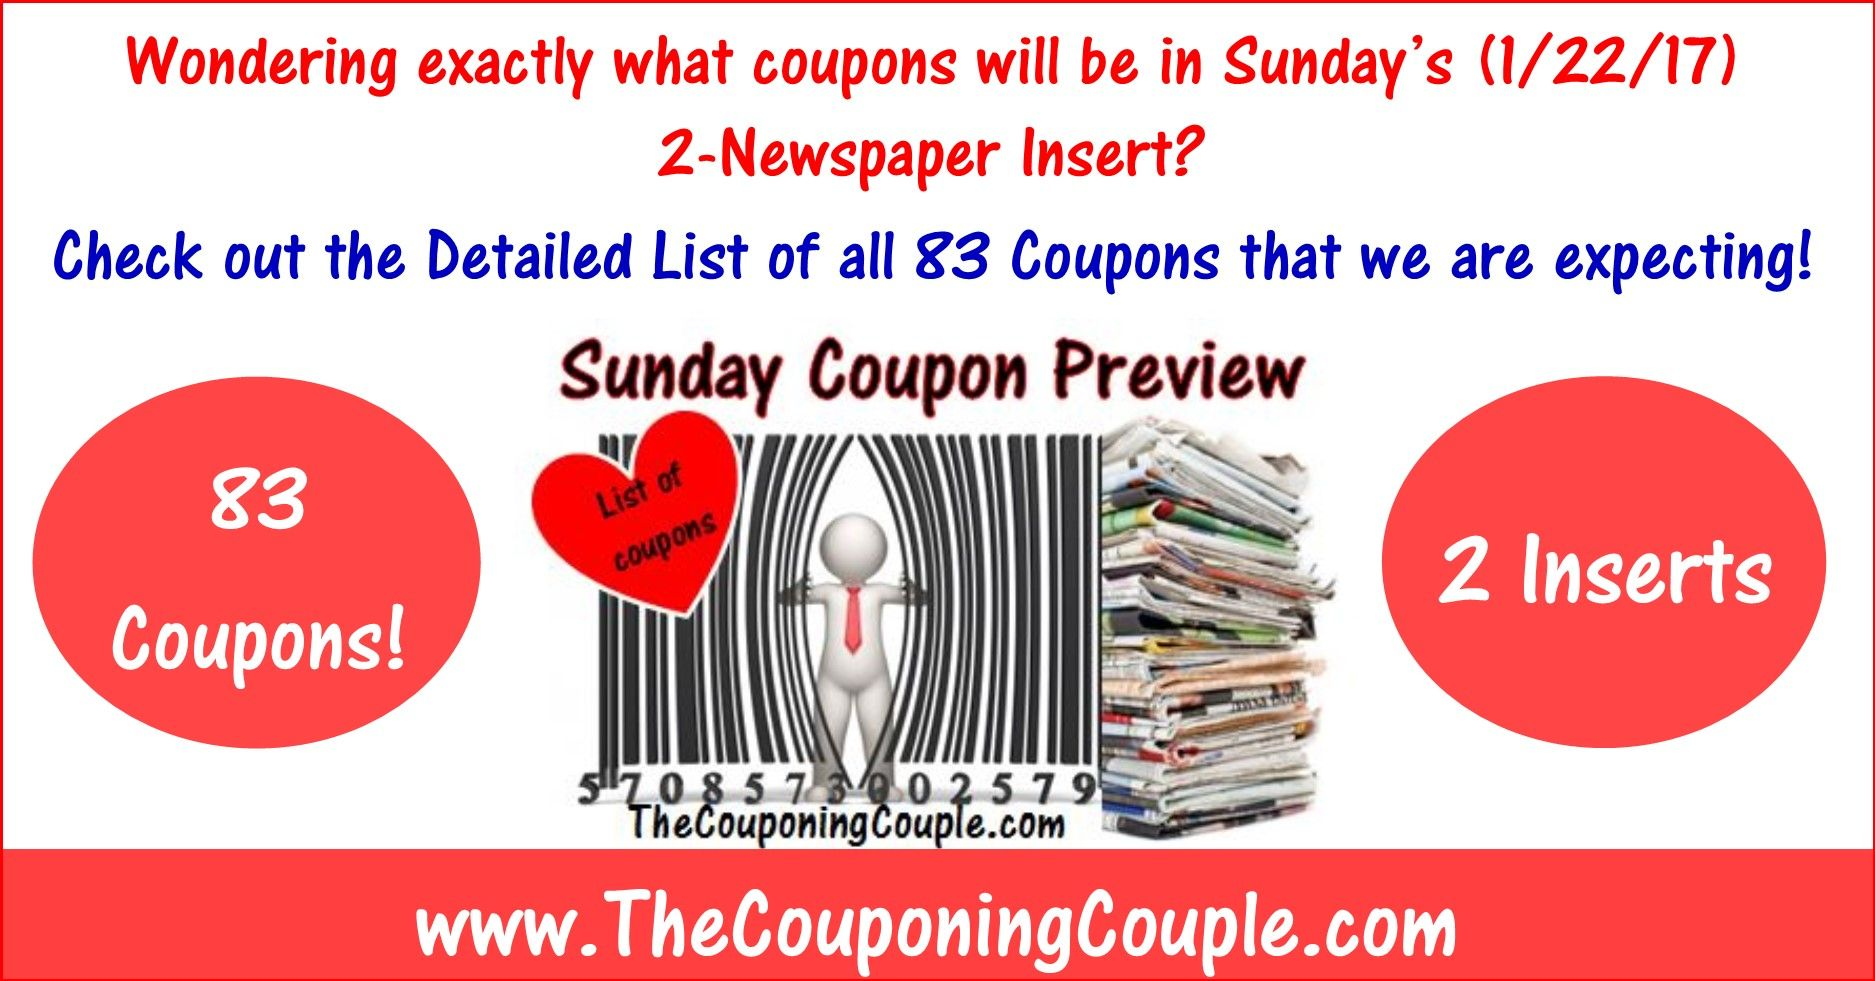 Wondering exactly what coupons will be in this Sunday's (1/22) 2-Newspaper Inserts? Click the Picture below to get a detailed list of all 83 coupons that will be in Sunday's 1-SmartSource and 1-RedPlum Insert ► http://www.thecouponingcouple.com/sunday-coupon-preview-for-1-22-17/  Use the SHARE button below the Picture to SHARE this Deal with your Family and Friends!  Visit us at http://www.thecouponingcouple.com for more great posts!